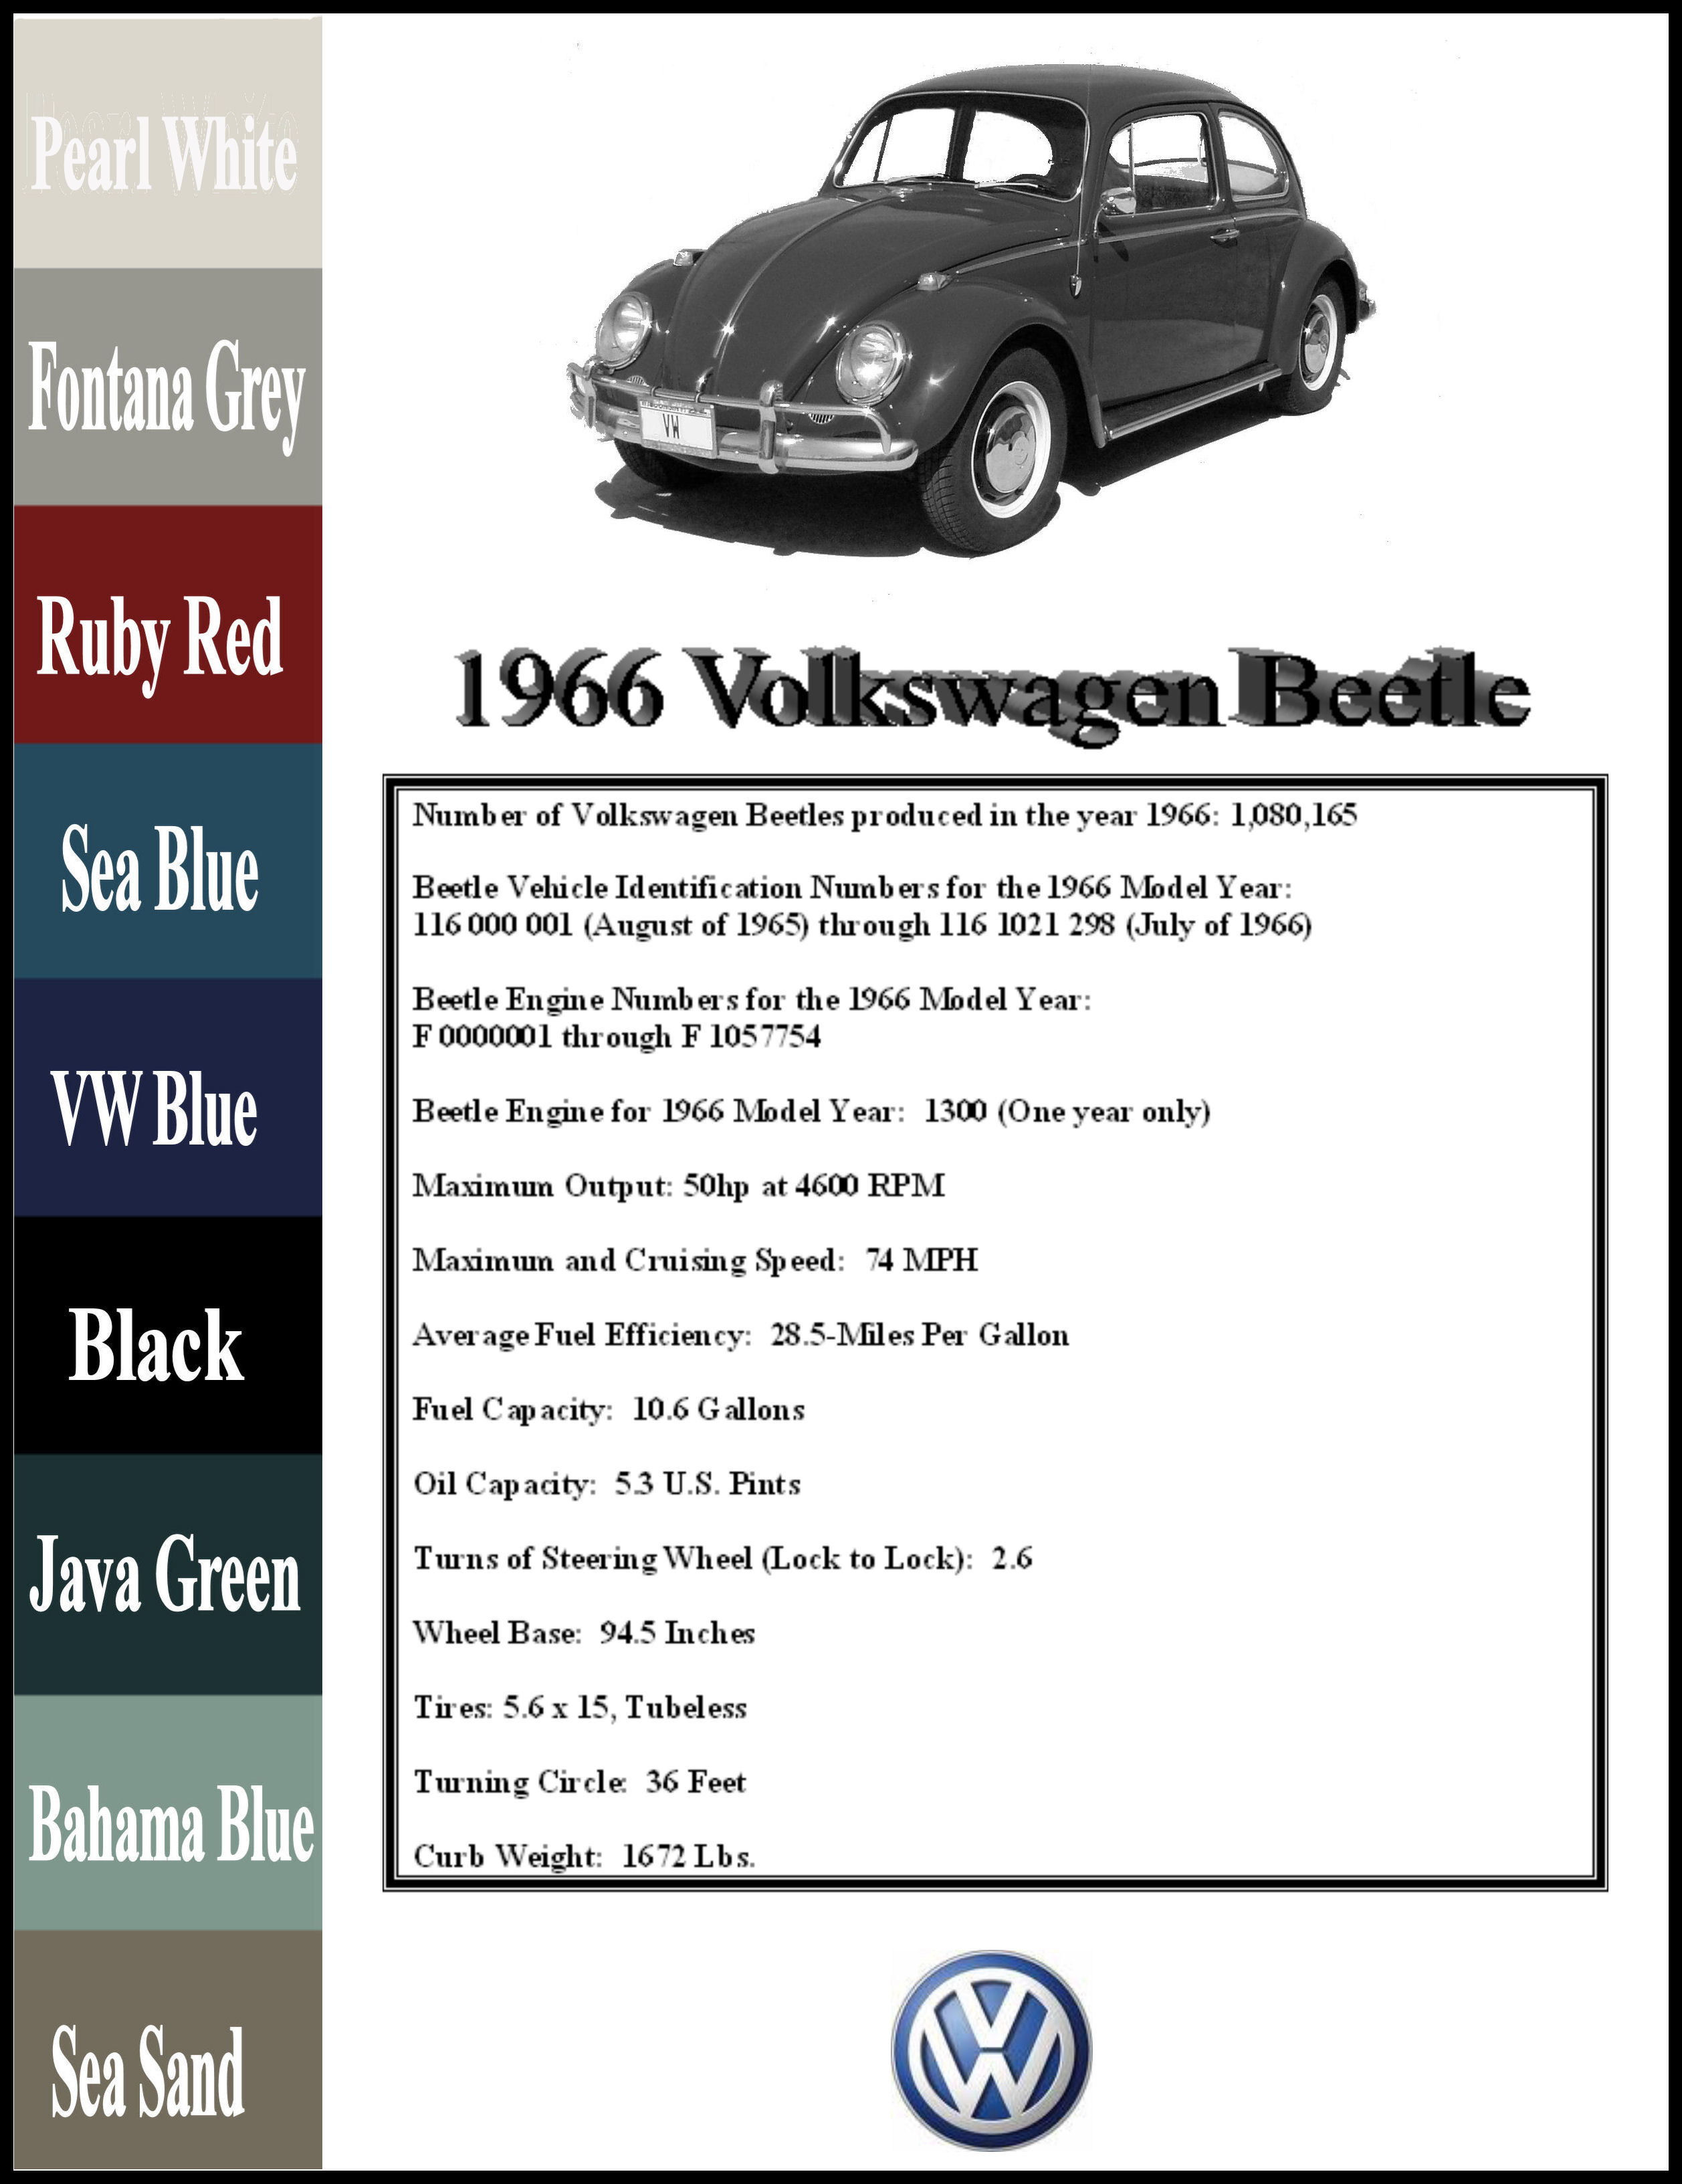 Vw Bug Engine Diagram Wiring Library Volkswagen 1966 Beetle 66